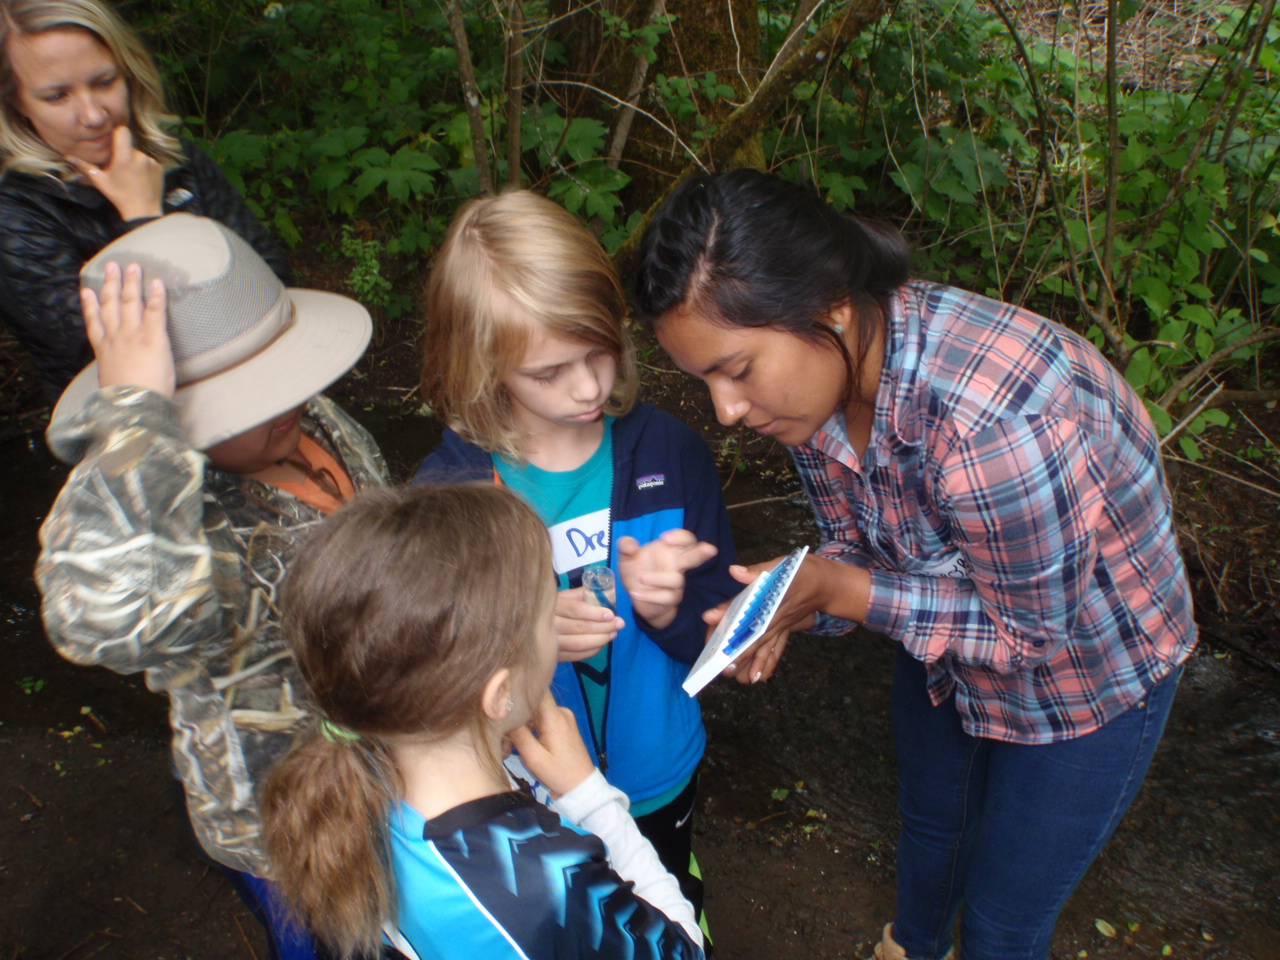 """""""As a native Spanish-speaker I love having the opportunity to use my language and culture in conjunction with my background in education and ecology. This project is a combination of everything that I think is important. It has been very special to see how excited kids are to have us in the classroom, they call us the """"bird experts"""" and the teachers tell us how much they look forward to us coming. I also hearing how much the kids have learned, for example they are very good at saying """"Black-throated Gray Warbler!"""" or """"Chipe Negrogris!"""" which is kind of a mouthful! I also thought it was really special to see how many birds we share with Mexico!""""   -Dionne Mejia, Institute for Applied Ecology"""